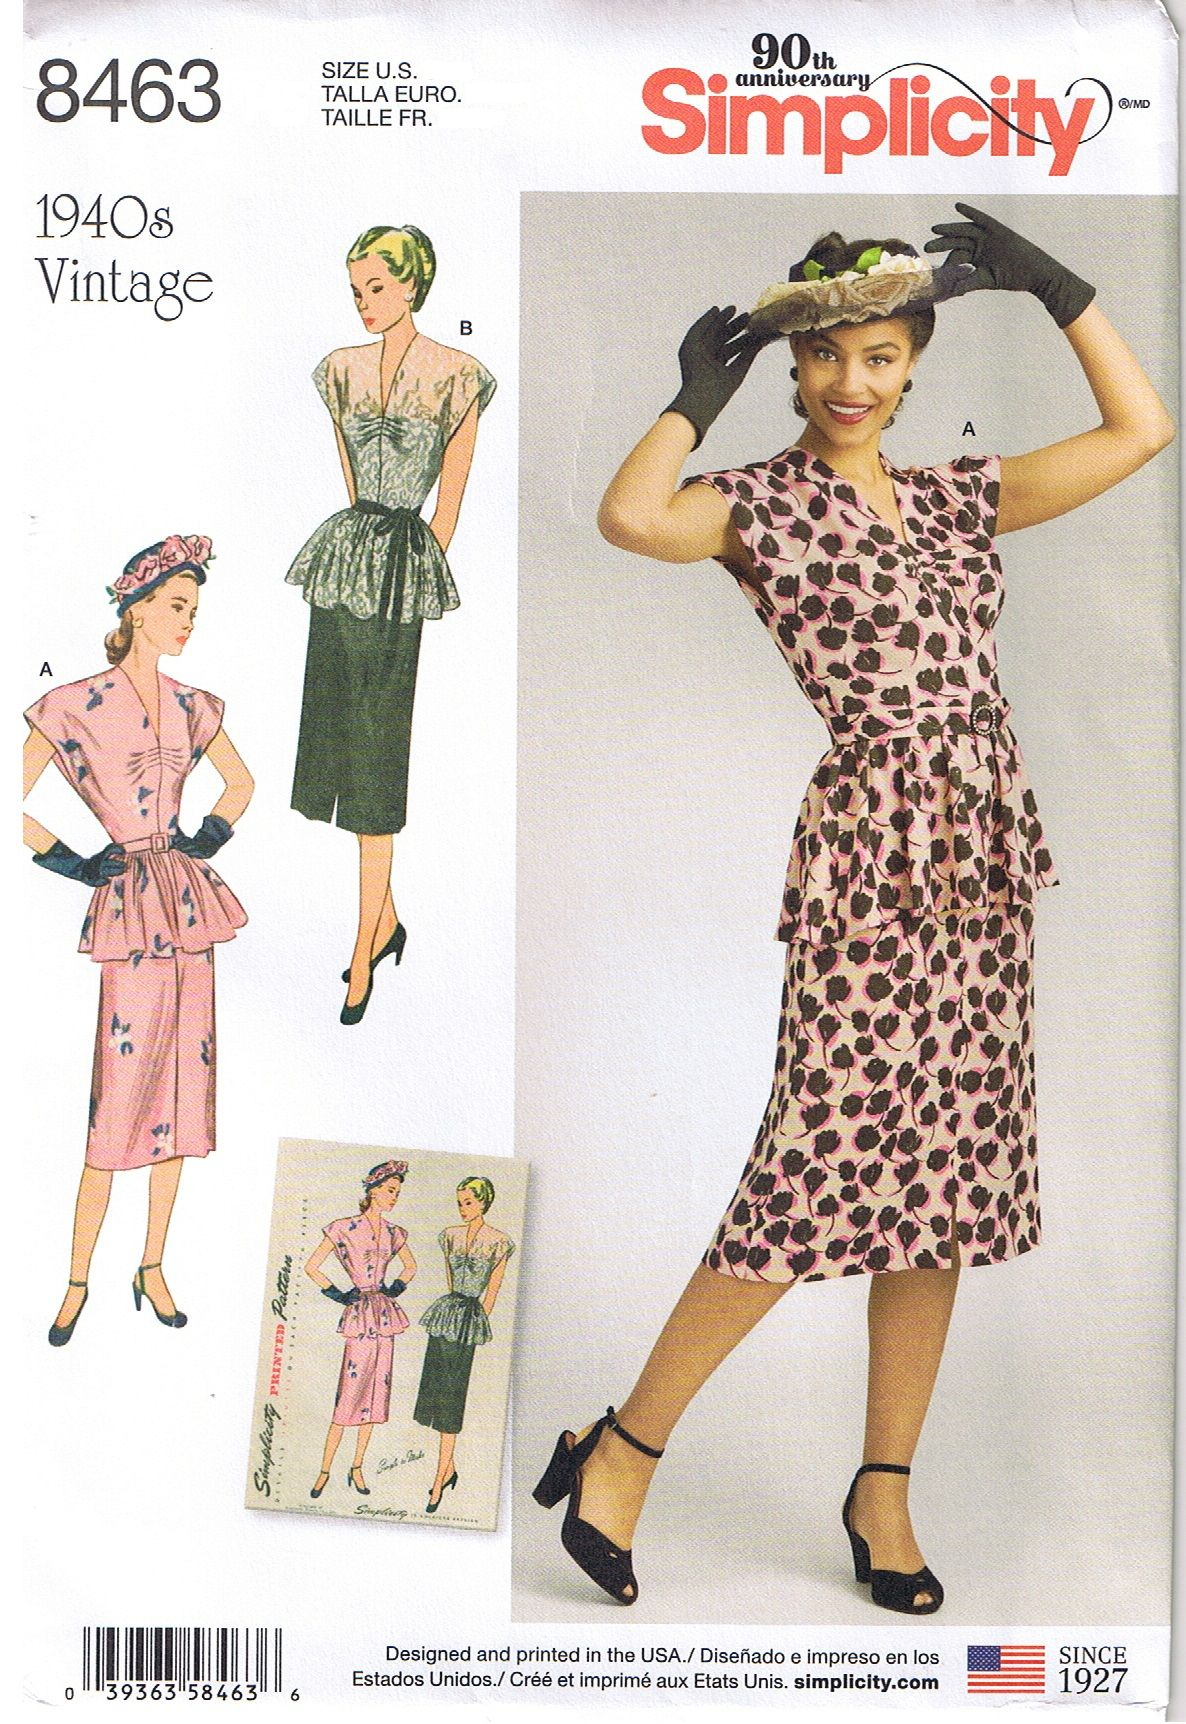 Vintage 1940s Peplum Top & Slim Skirt sewing pattern. Simplicity ...